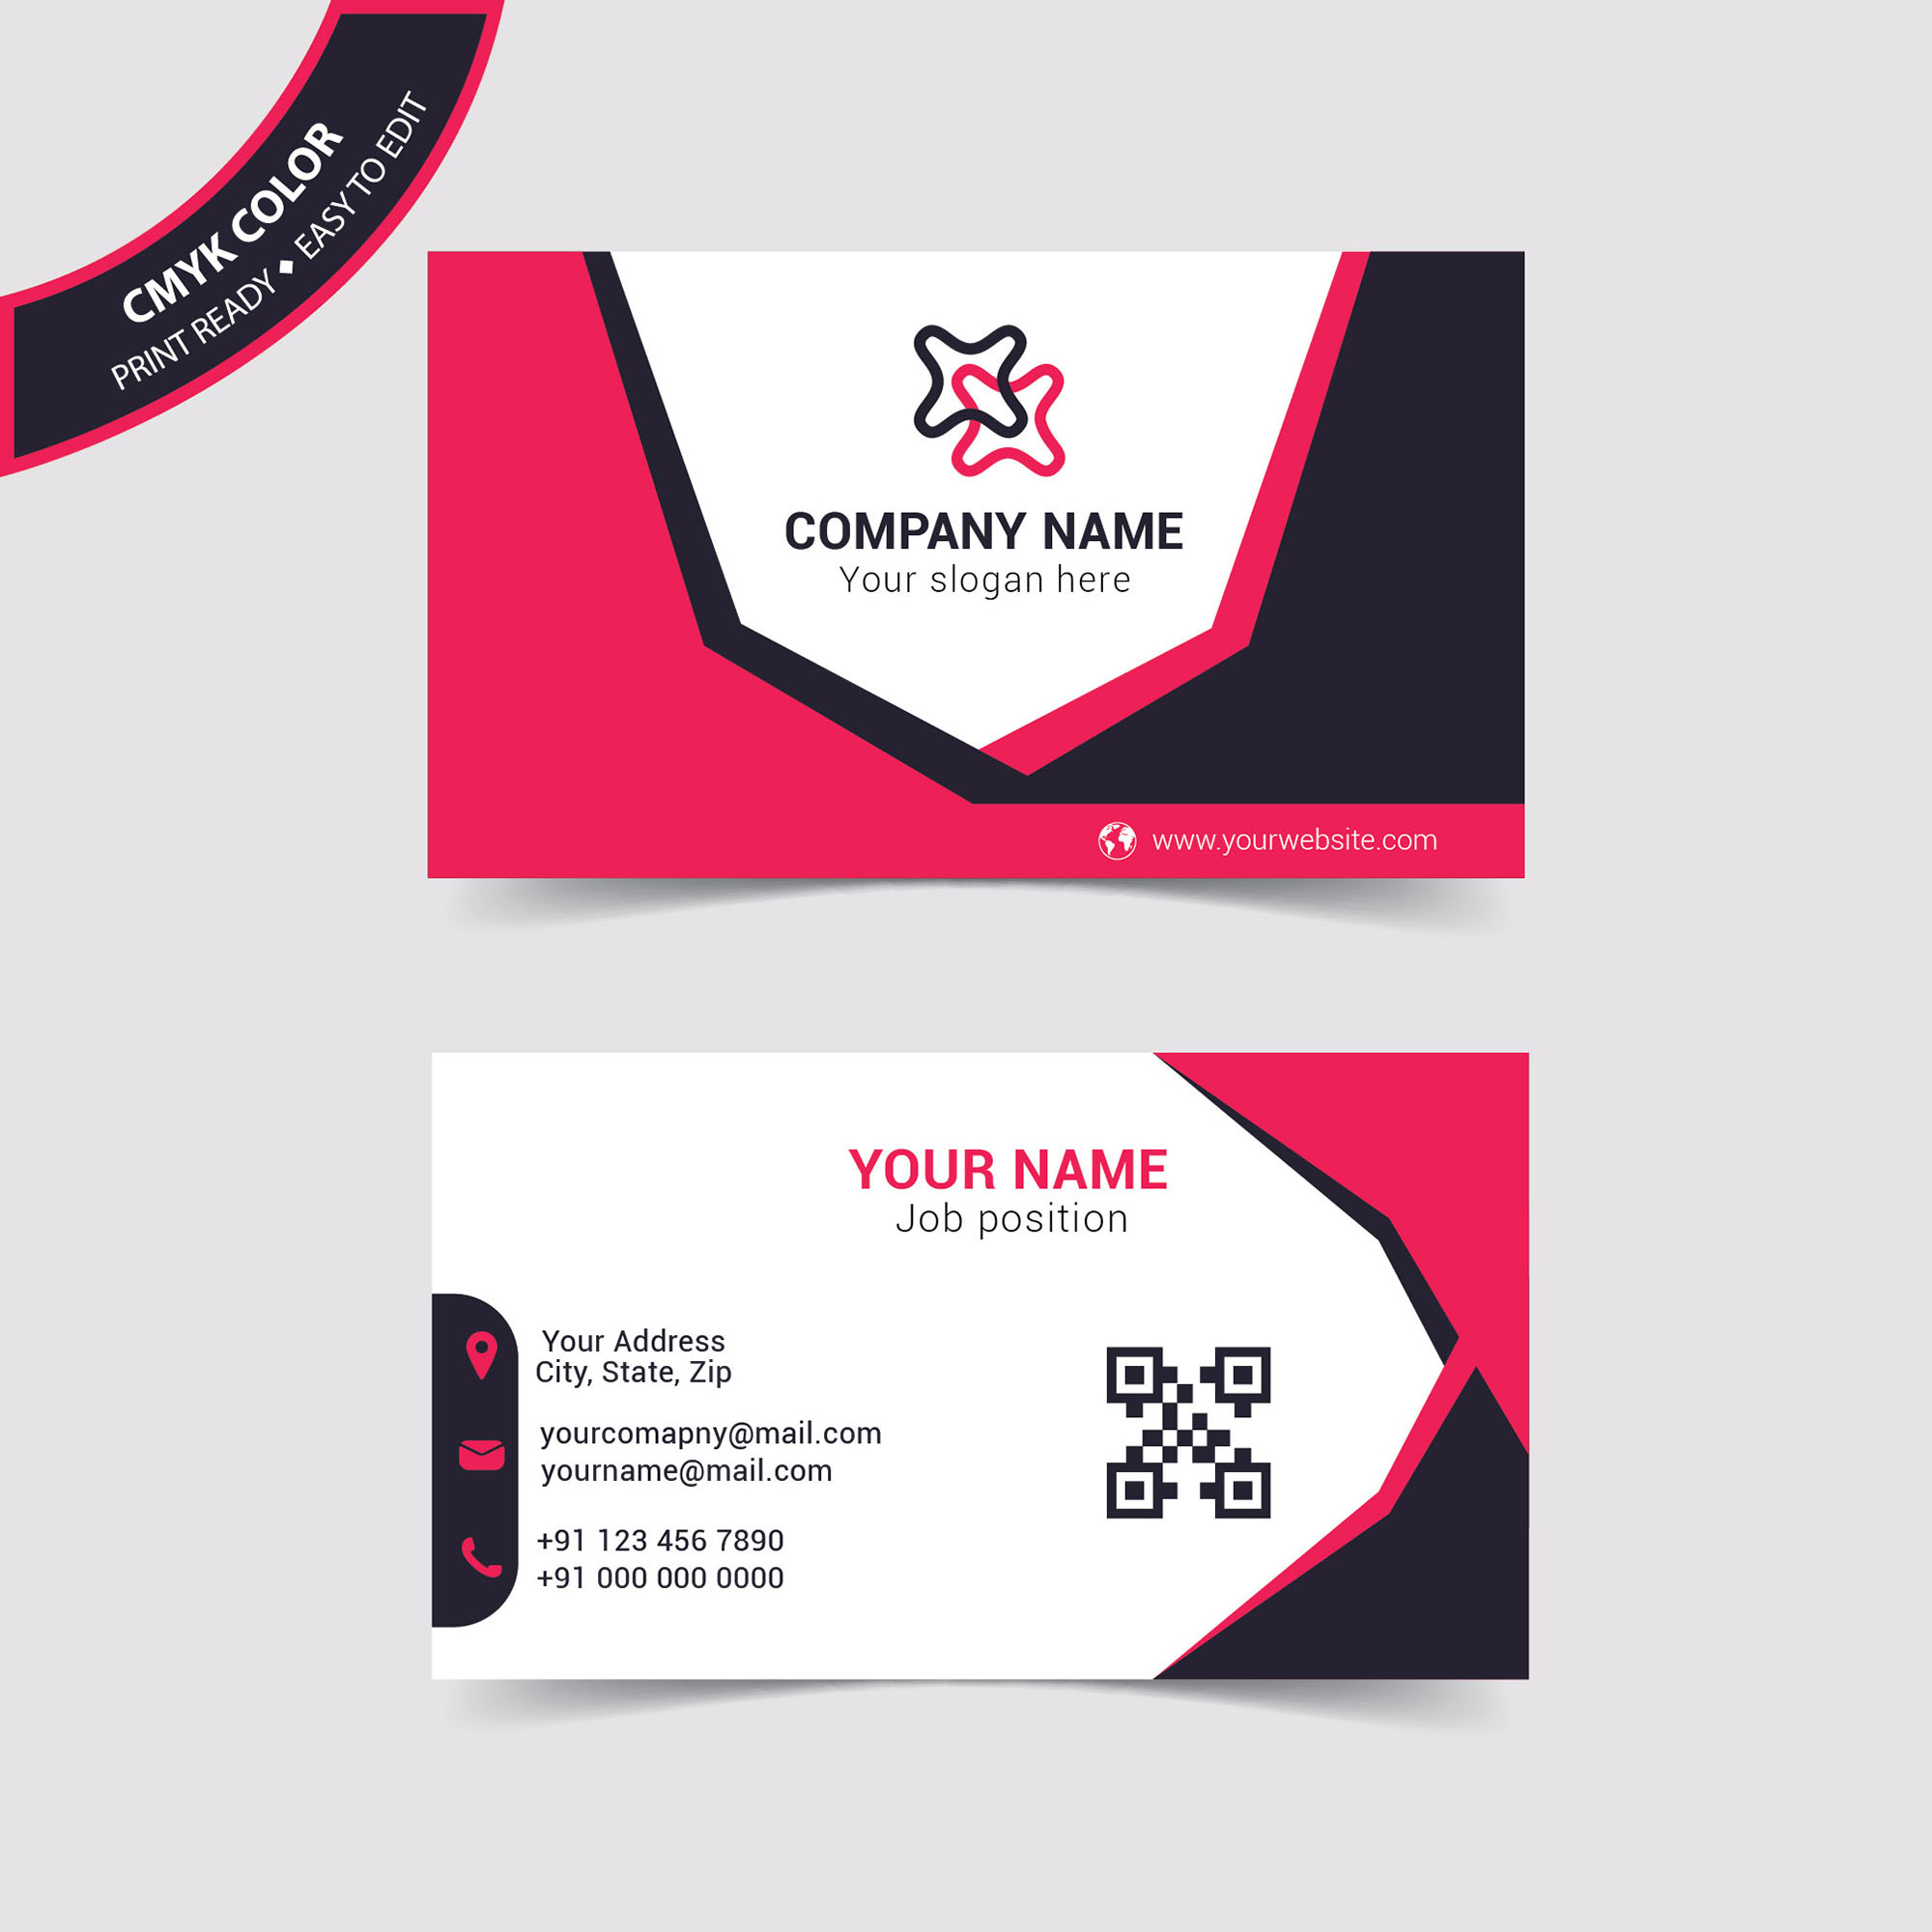 Personal name card design free download print template wisxi business card business cards business card design business card template design templates accmission